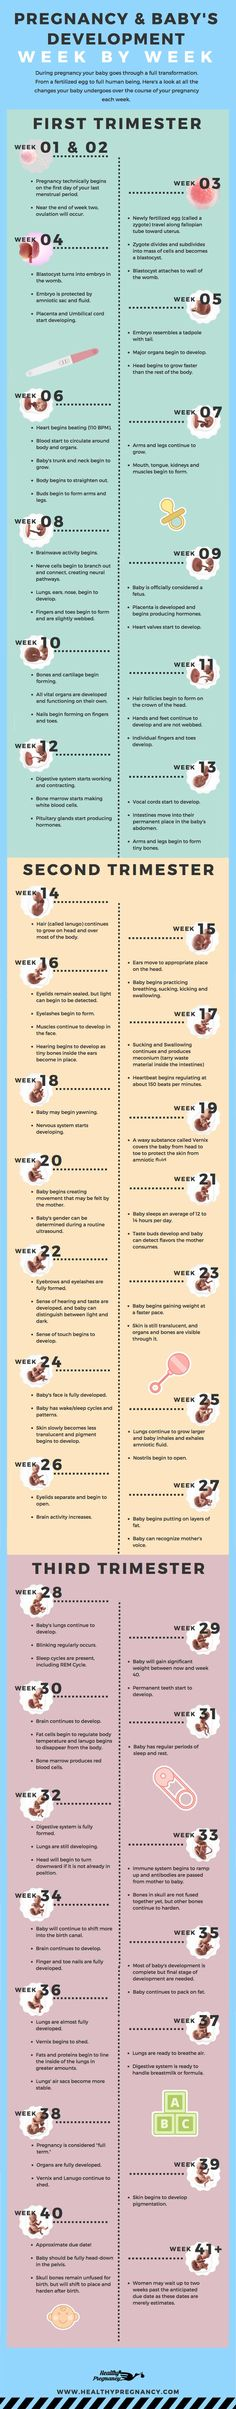 Pregnancy is a nine-month rollercoaster of changes. This guide can help you understand the changes  your baby will be going through during each week of your pregnancy.   Pregnant | Week by Week | Calendar | Pregnancy Calendar | Baby's Development | Fetus Development | Baby's Growth (scheduled via http://www.tailwindapp.com?utm_source=pinterest&utm_medium=twpin&utm_content=post197578579&utm_campaign=scheduler_attribution)